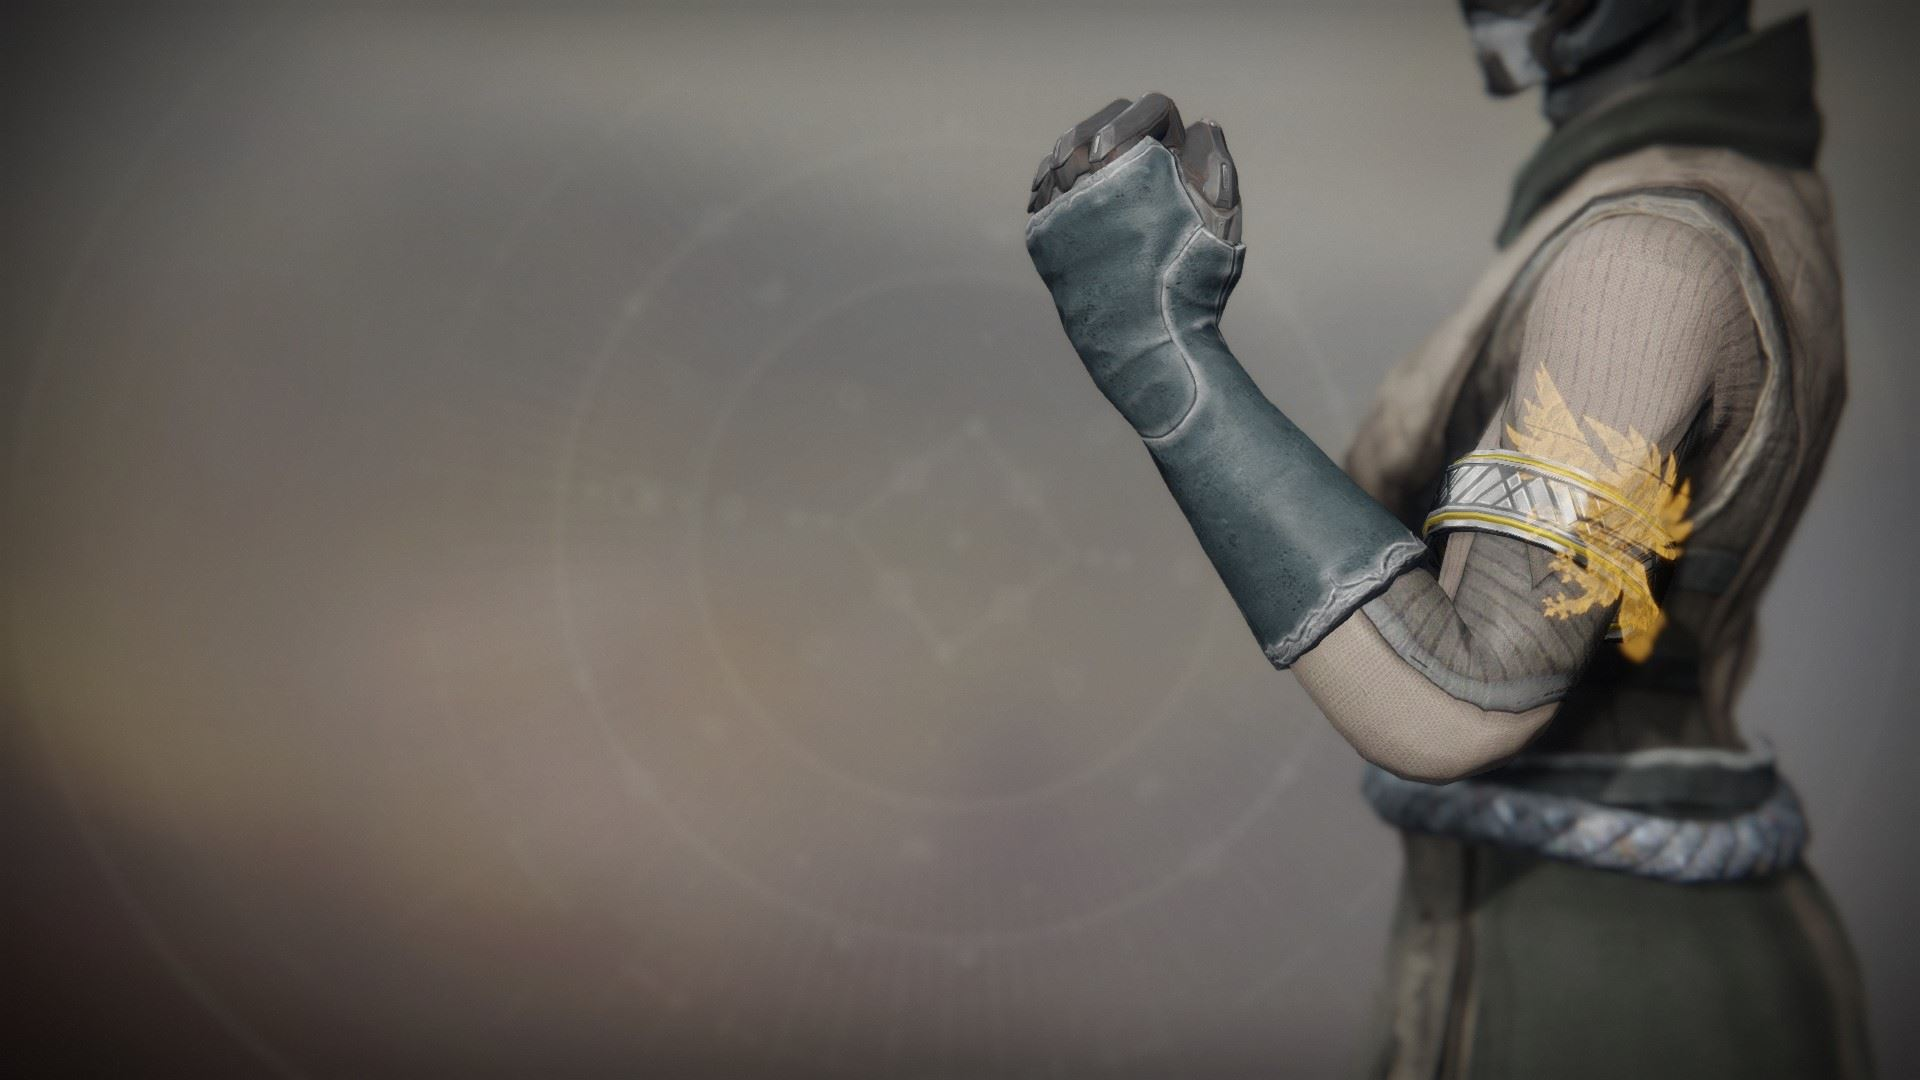 An in-game render of the Solstice Bond (Scorched).